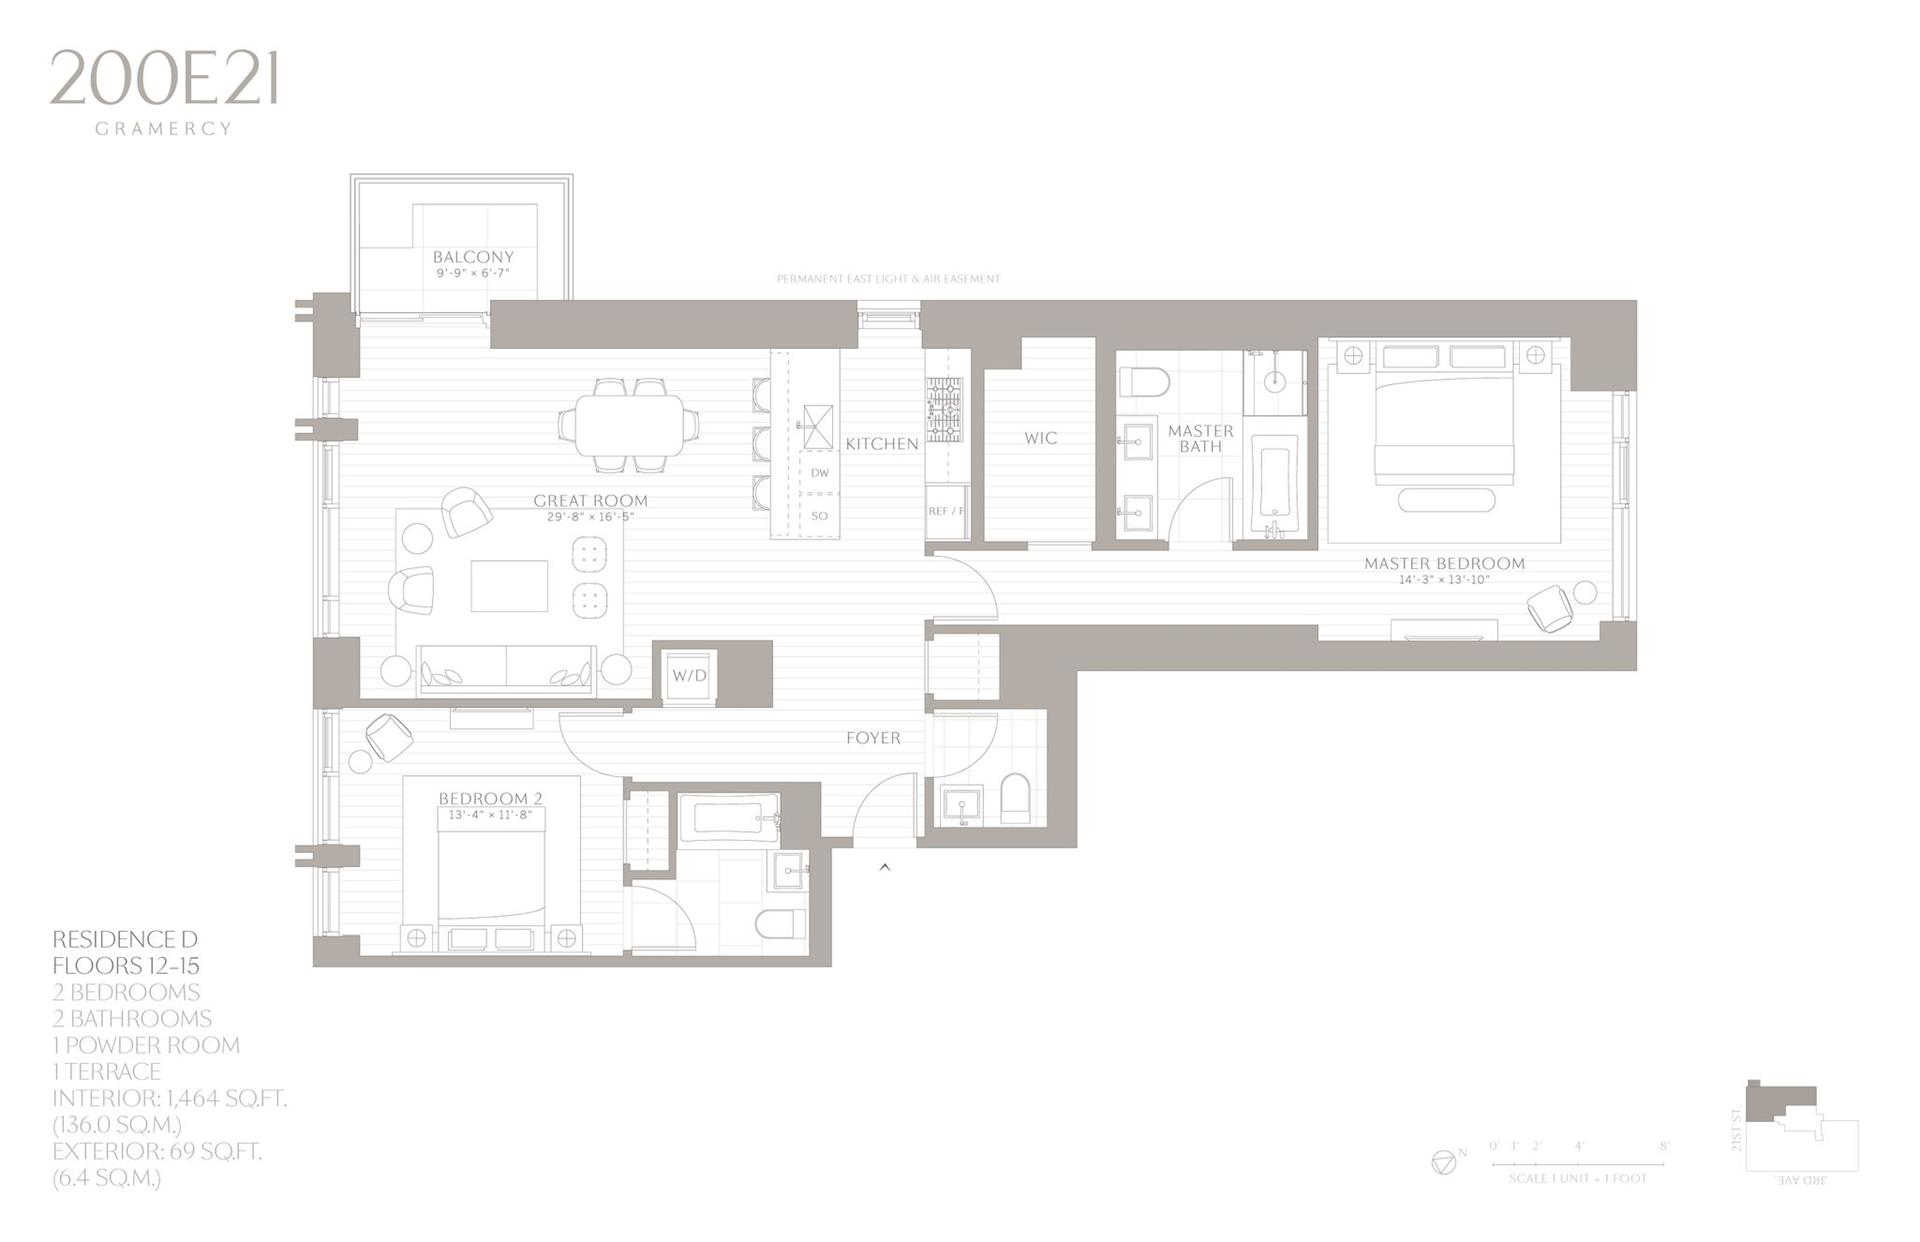 Floor plan of 200 East 21st Street, 12D - Gramercy - Union Square, New York